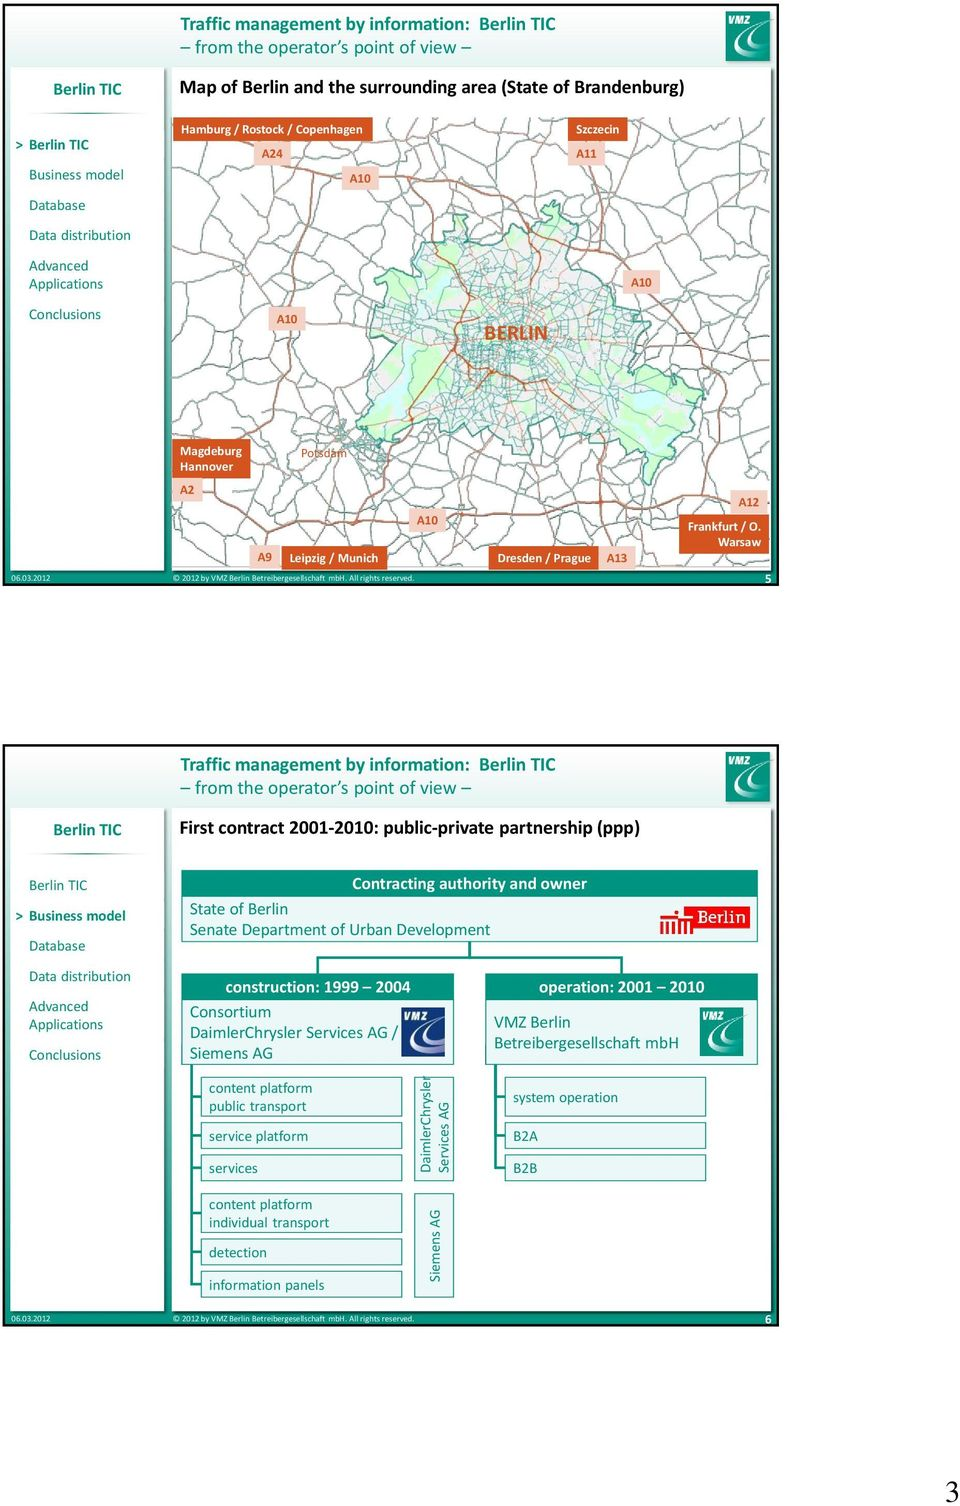 Warsaw 5 Traffic management by information: First contract 2001-2010: public-private partnership (ppp) Contracting authority and owner State of Berlin Senate Department of Urban Development